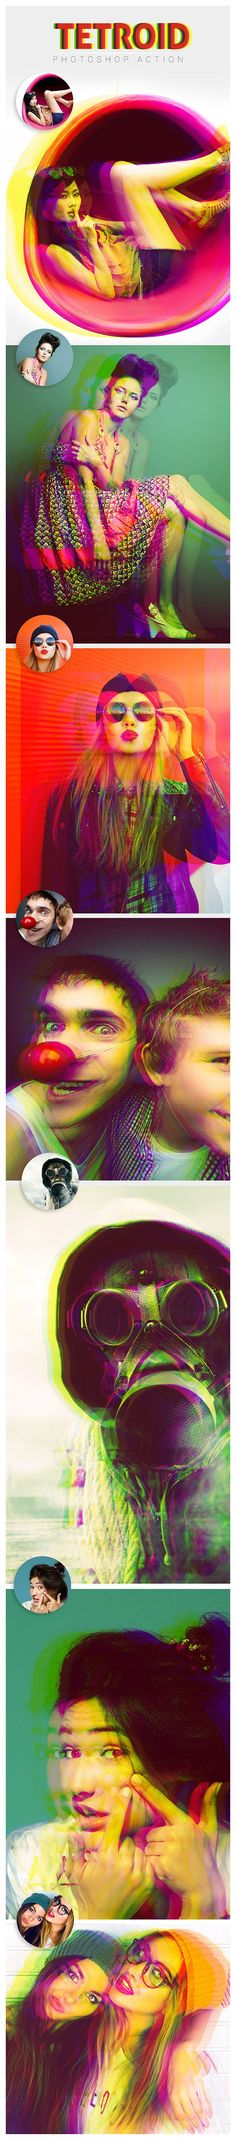 Tetroid - Photoshop Action #photoeffect Download: http://graphicriver.net/item/tetroid/14039108?ref=ksioks